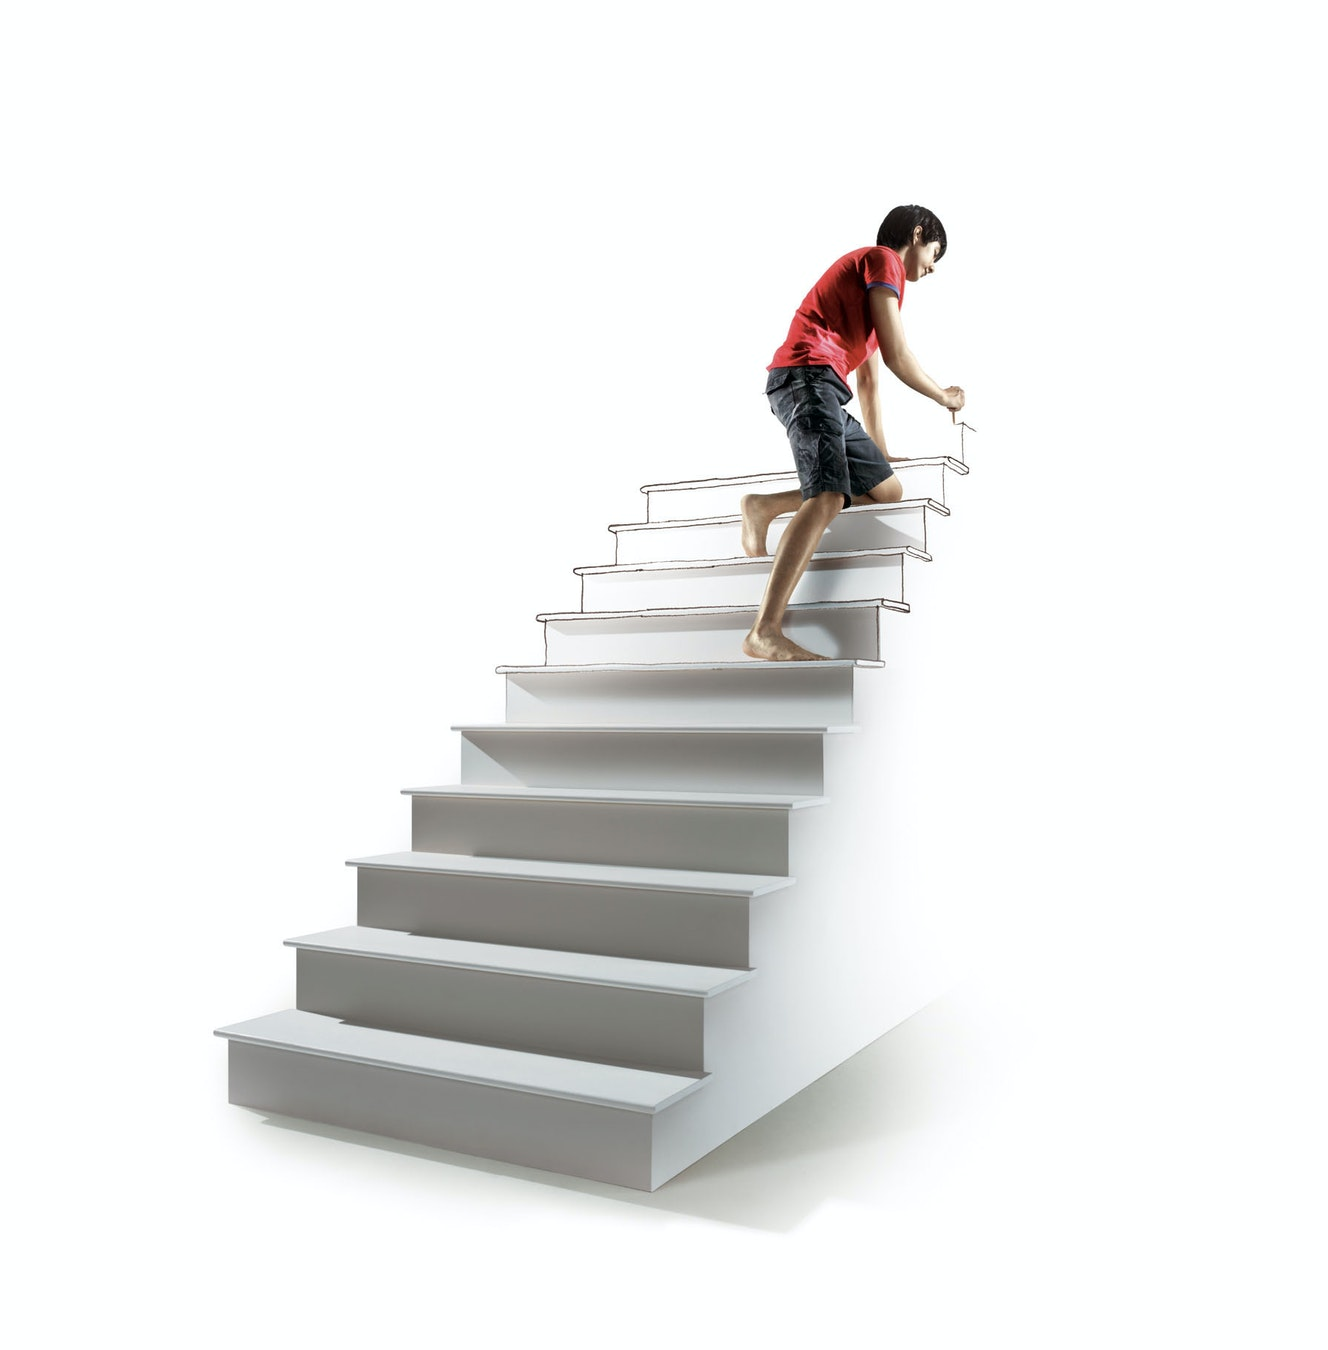 Caltex_Learning_Stairs_Shaun Pettigrew